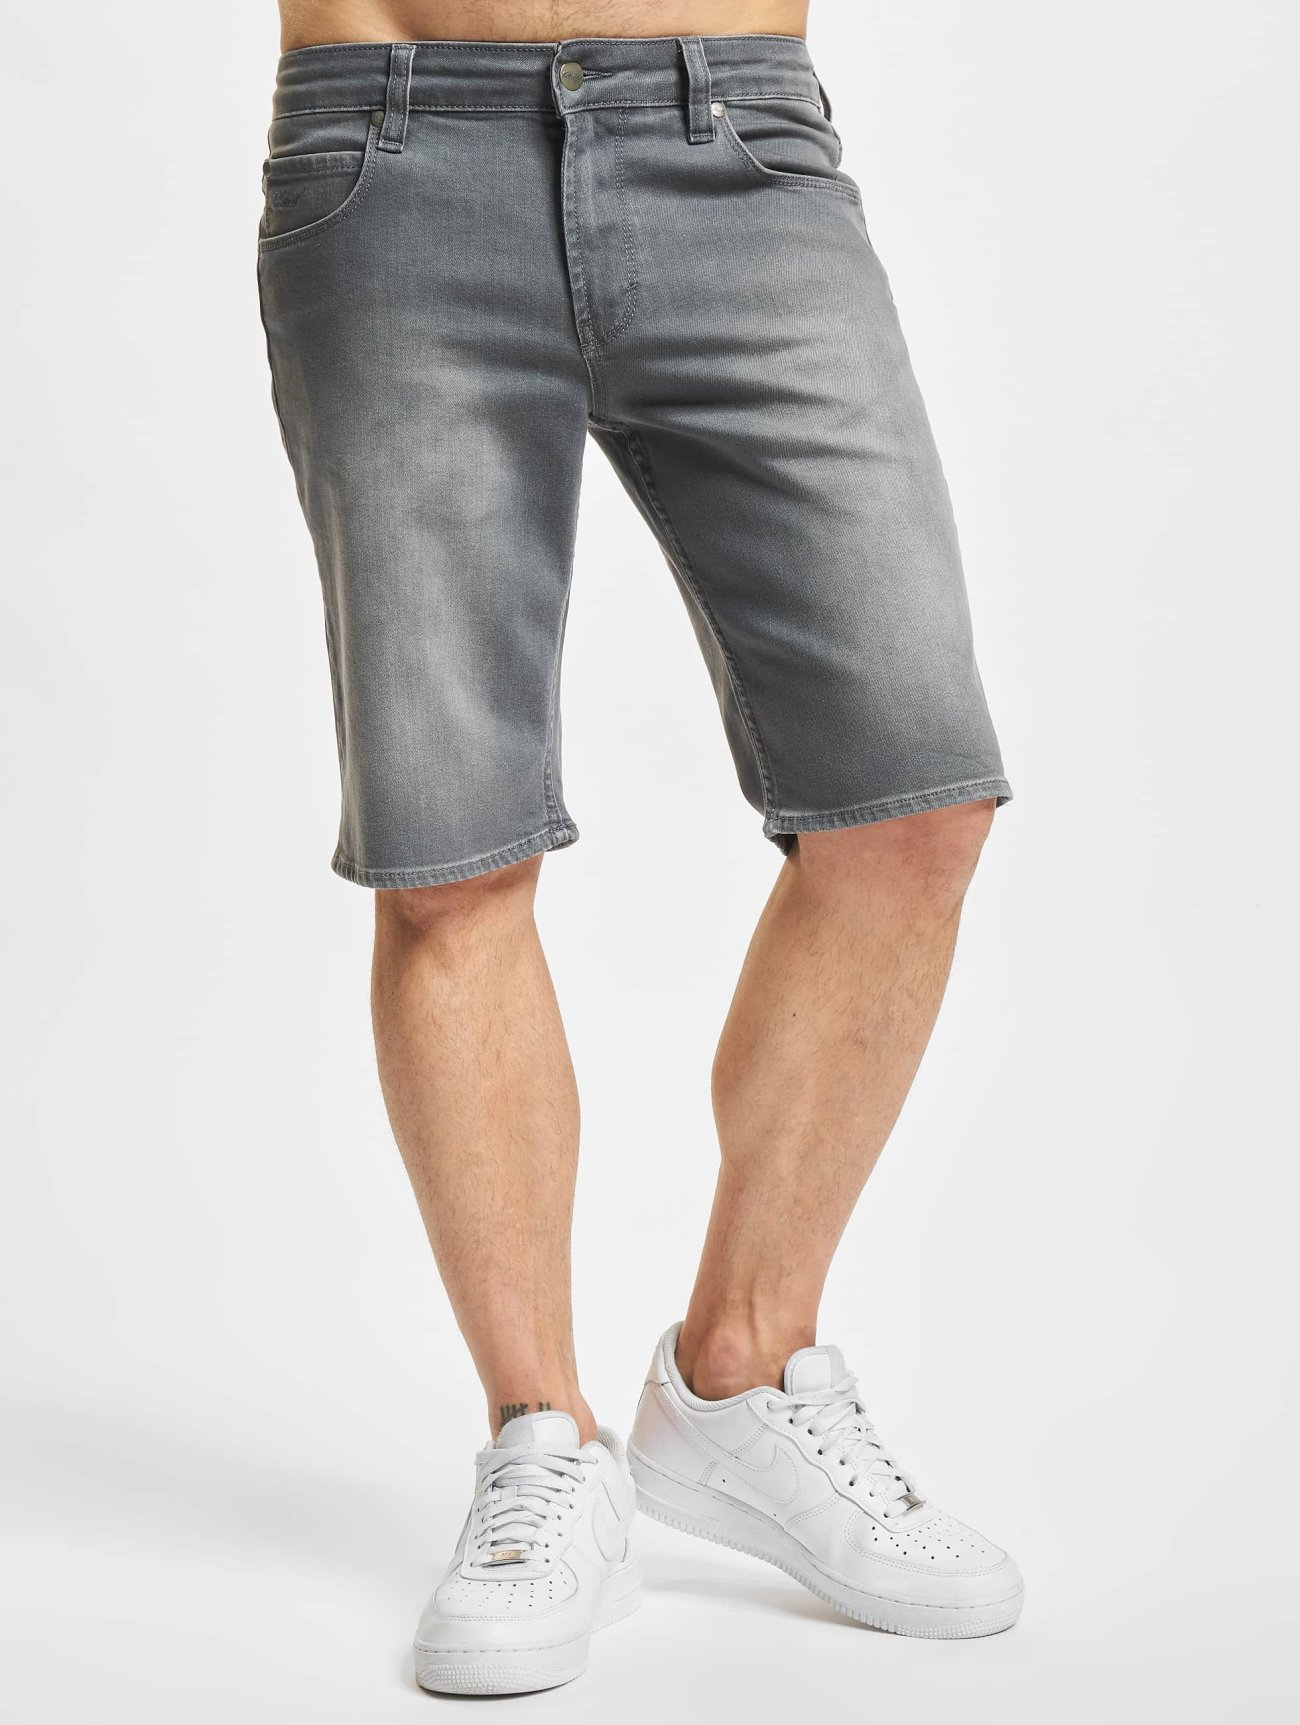 Reell Jeans  Rafter 2   gris Homme Short  304023 Homme Pantalons & Shorts